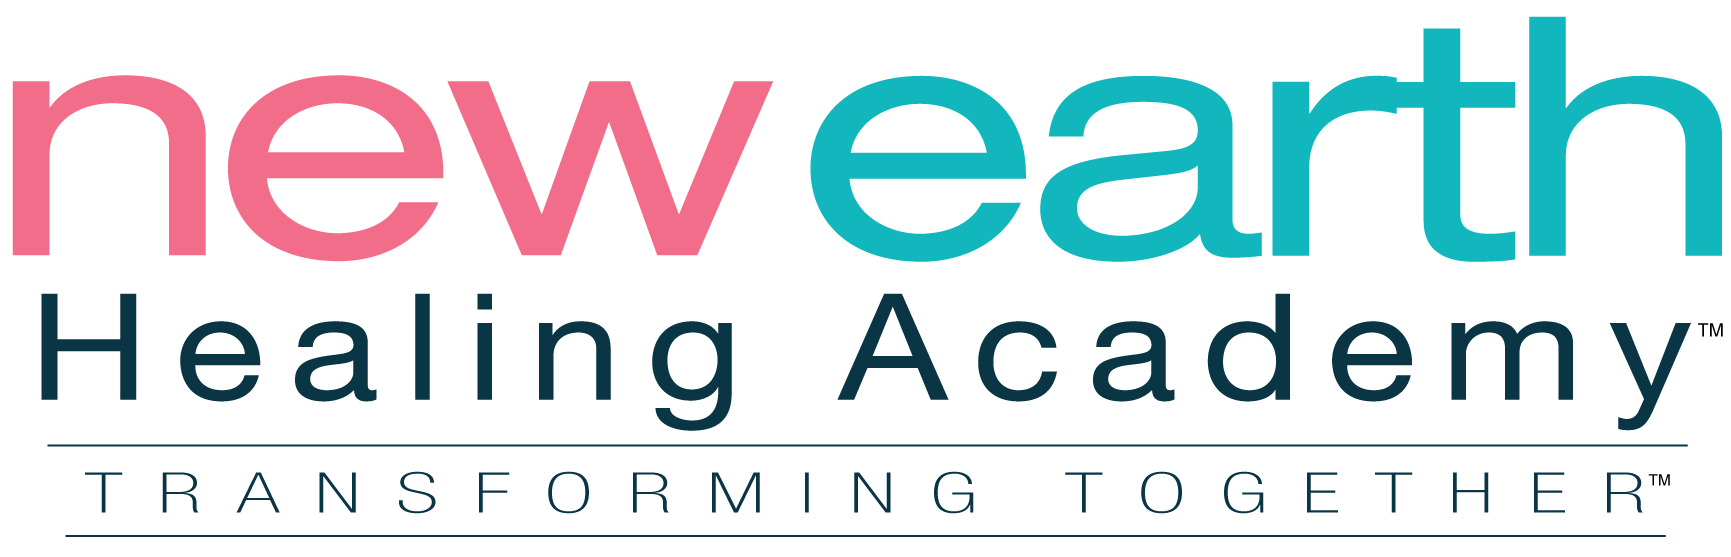 New Earth Healing Academy